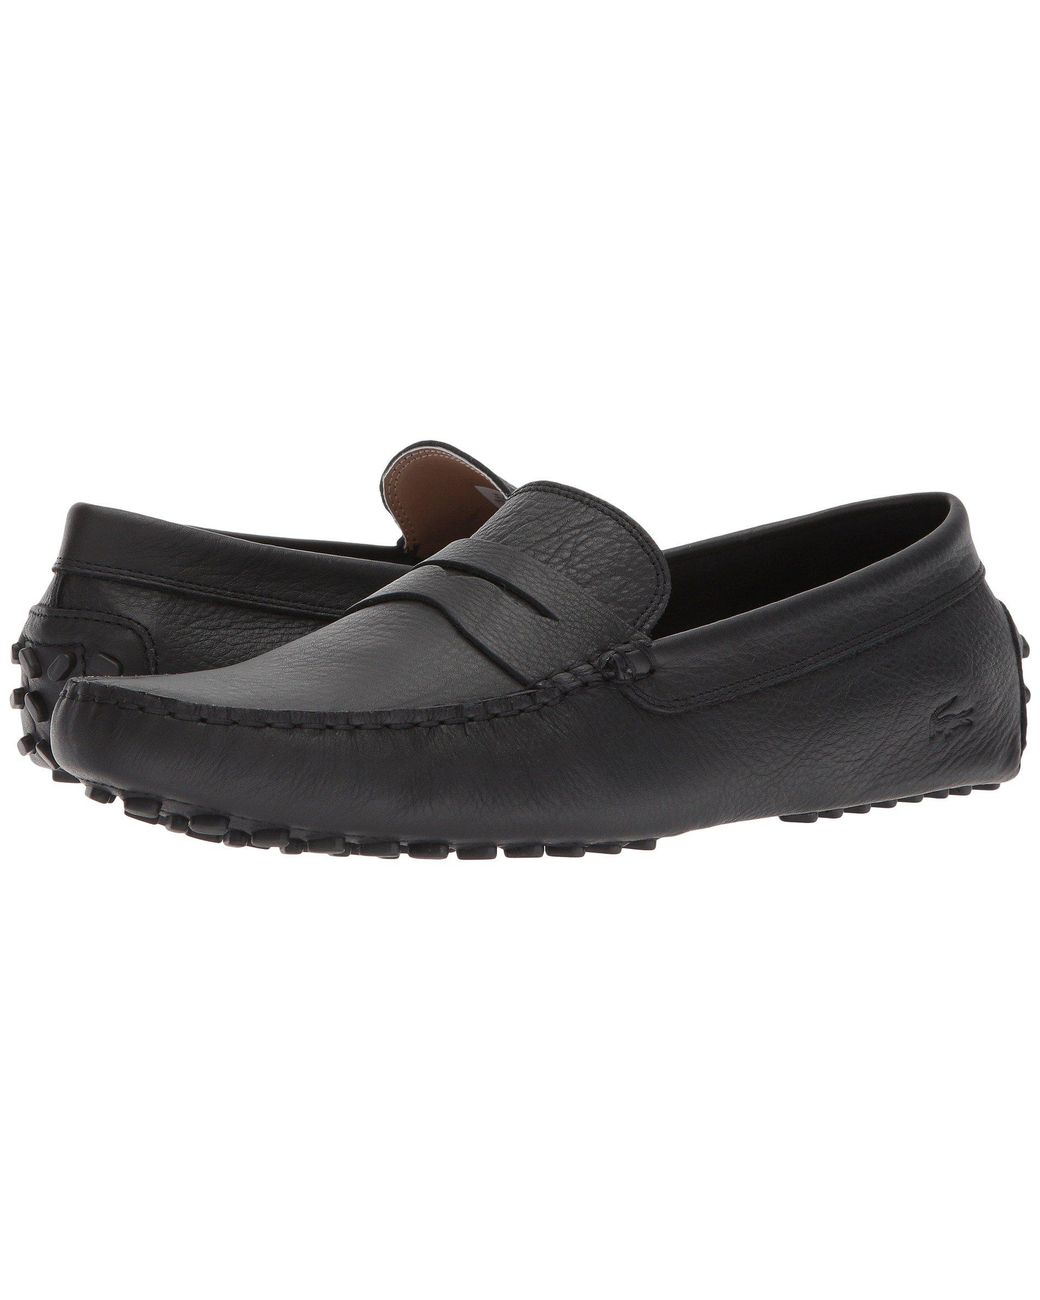 Mens Fleece Lined Slippers Slip On UC MOTIF Casual Shoes Mules Moccasins Sizes